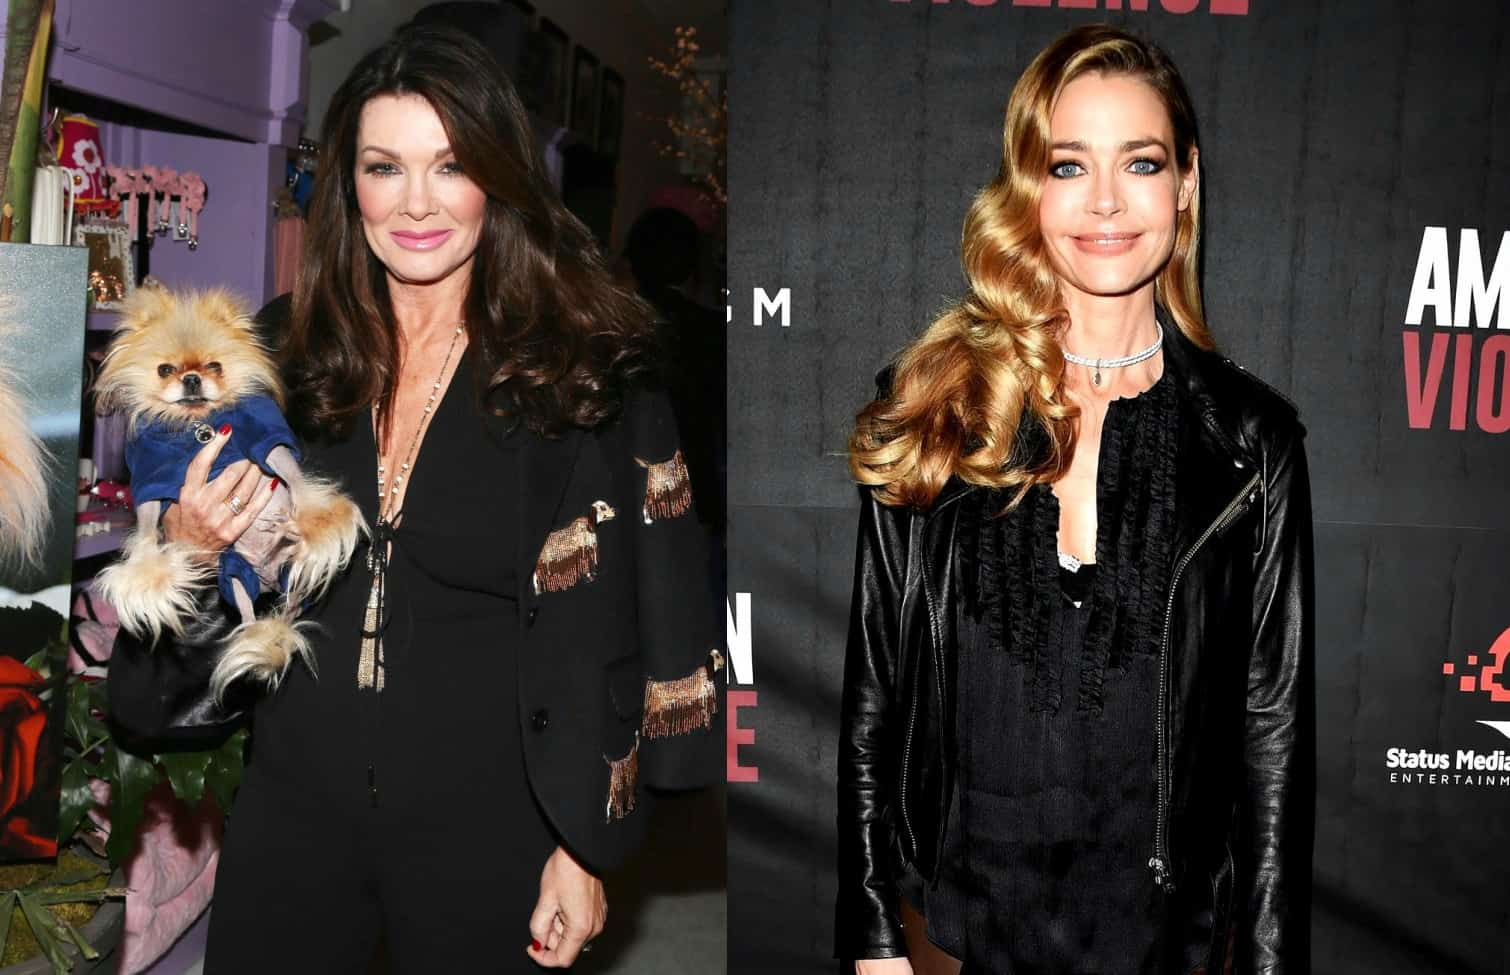 RHOBH Lisa Vanderpump vs Denise Richards